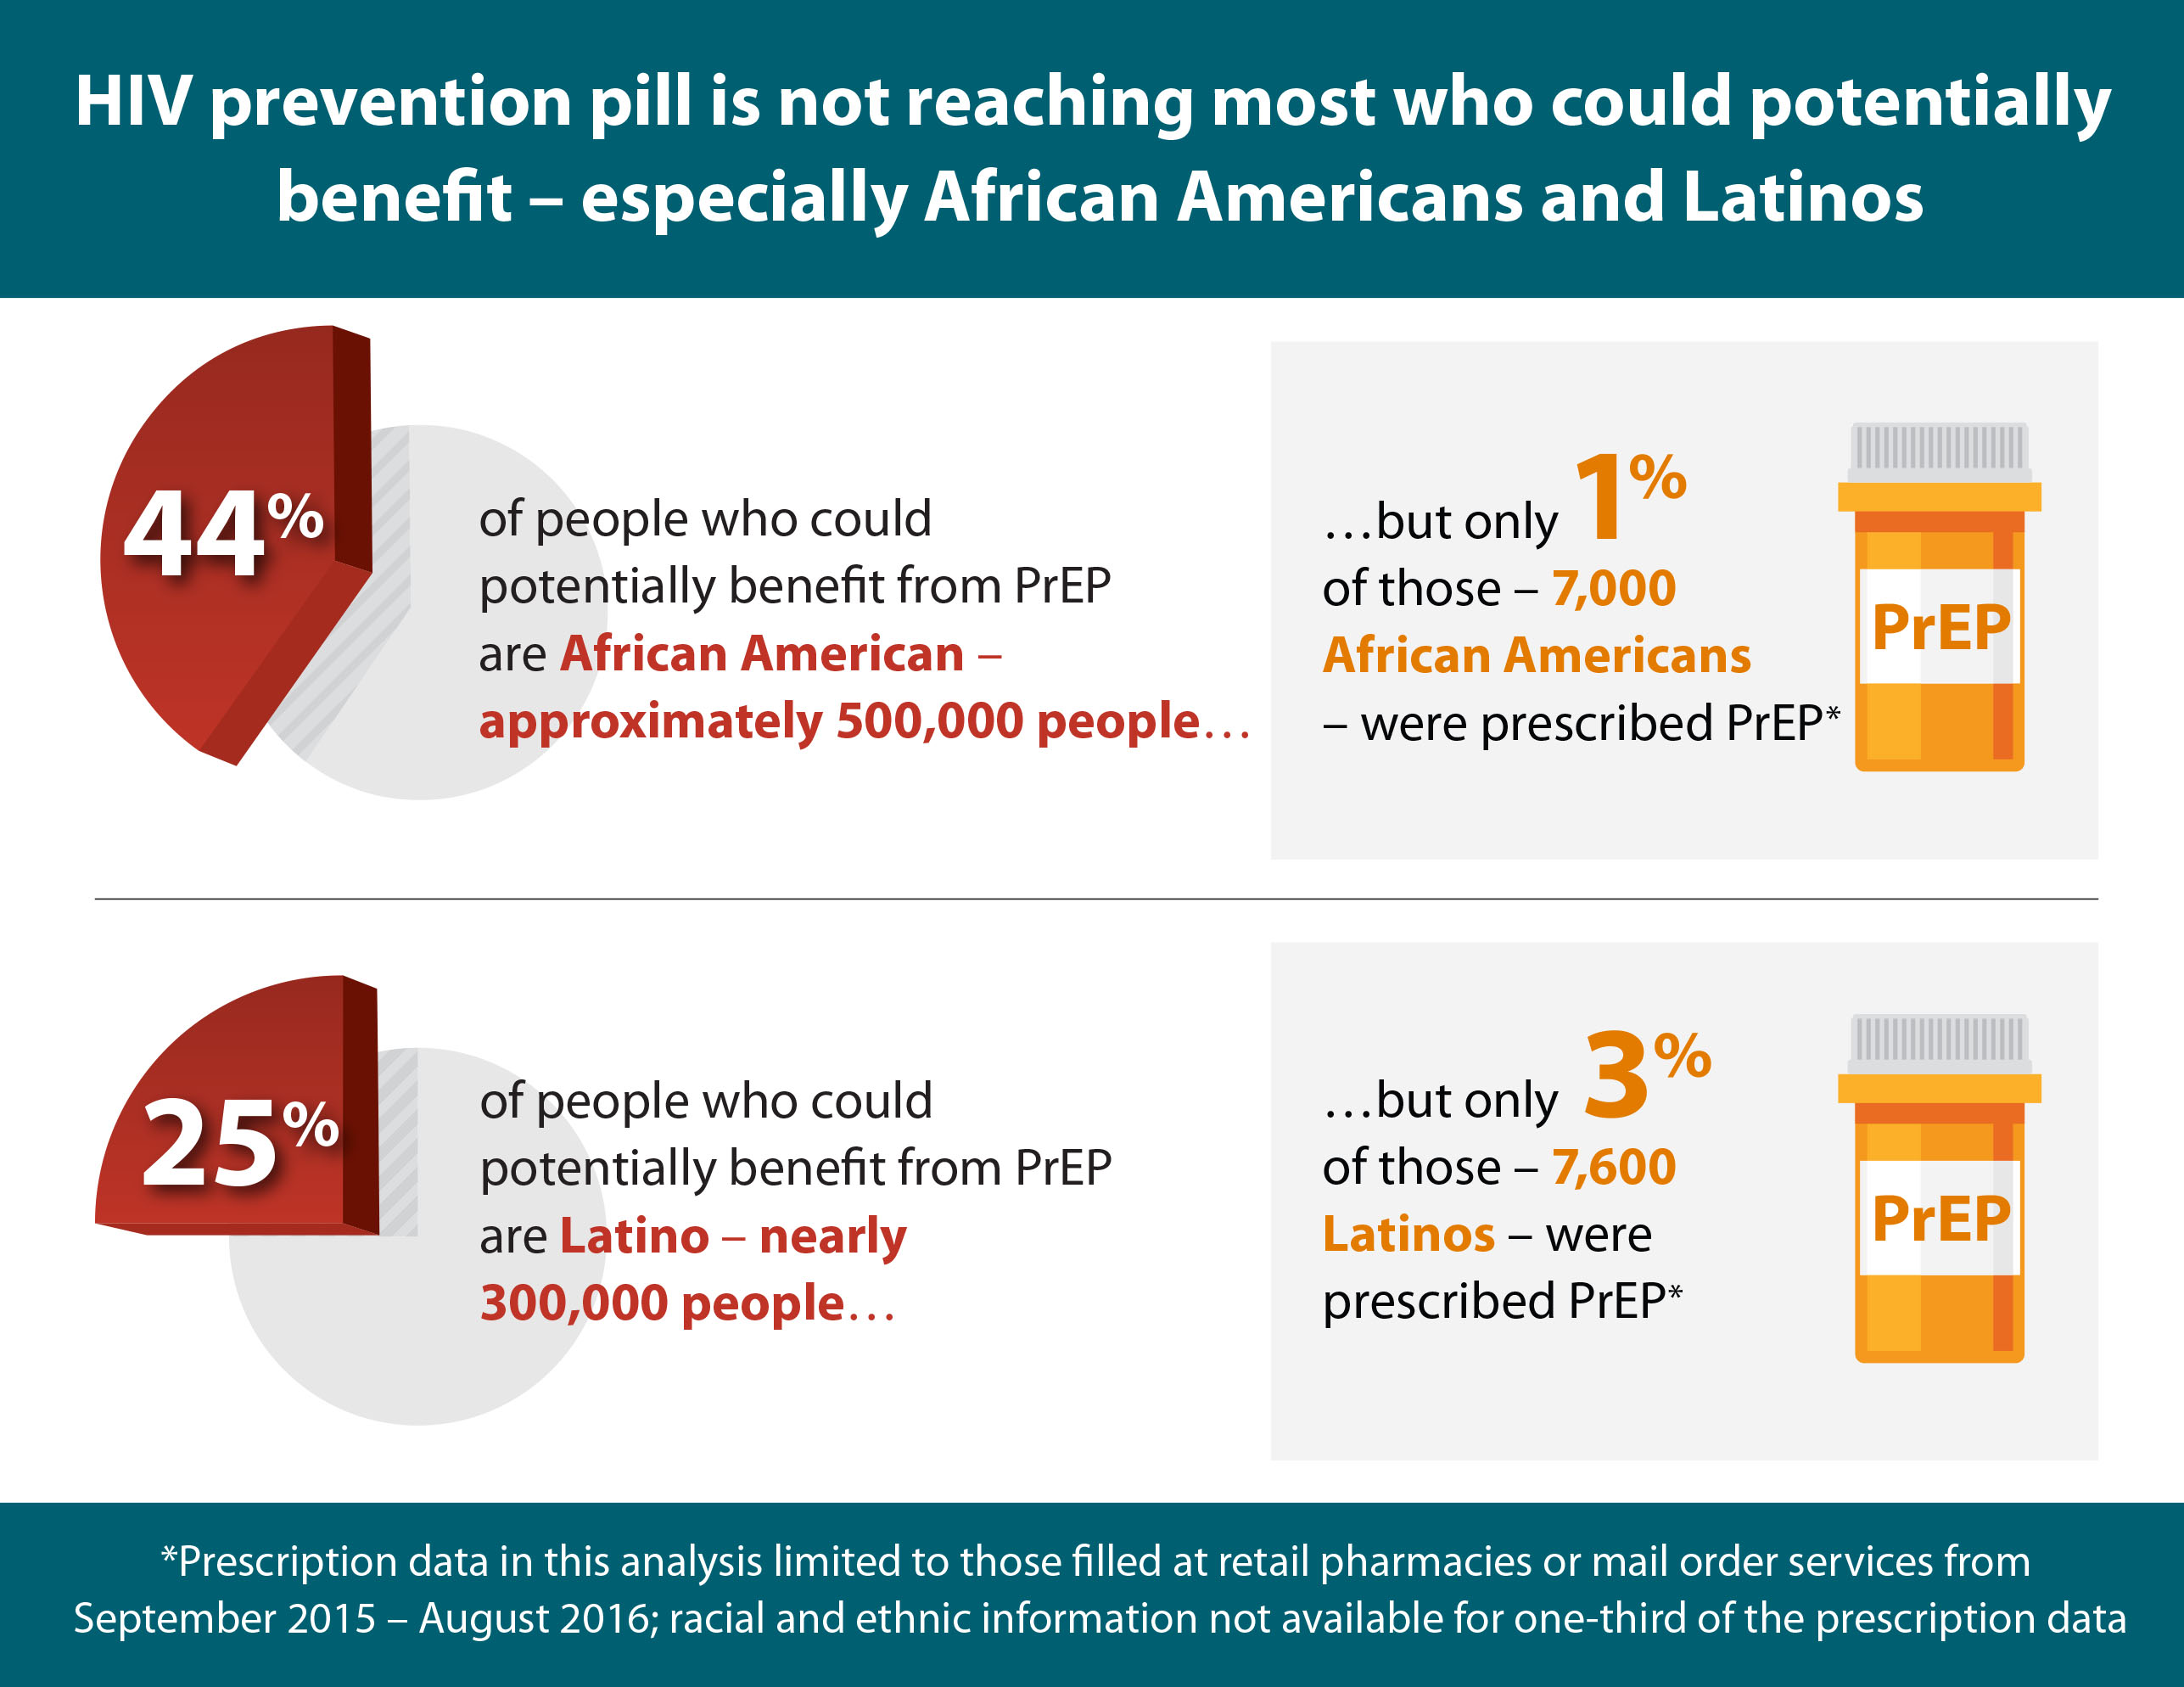 Graphic showing PrEP is not reaching most who could potentially benefit – especially African Americans and Latinos.